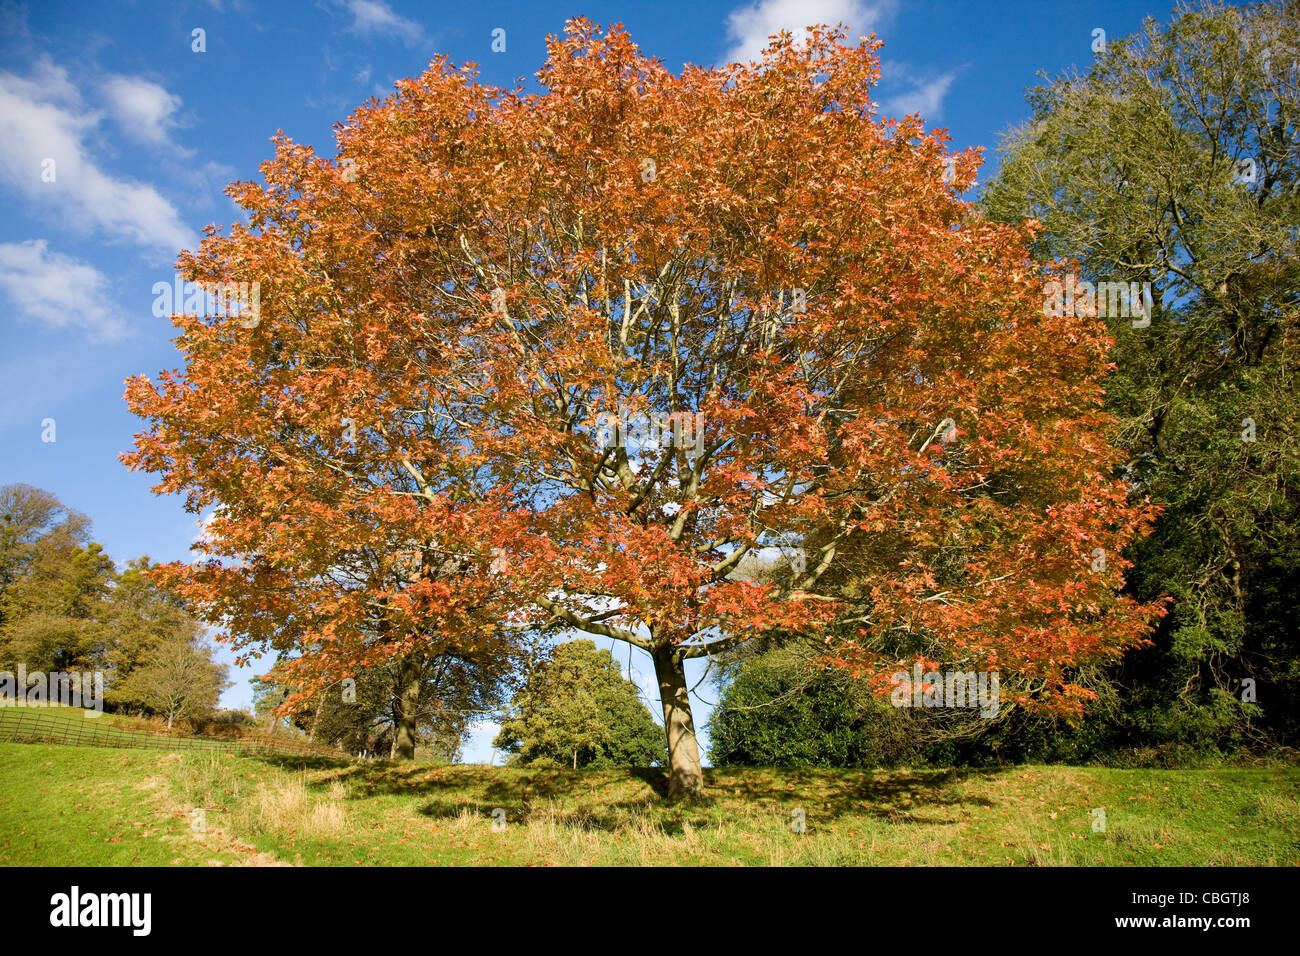 Turkey Oak Quercus cerris in autumn at Ashton Court near Bristol UK - Stock Image